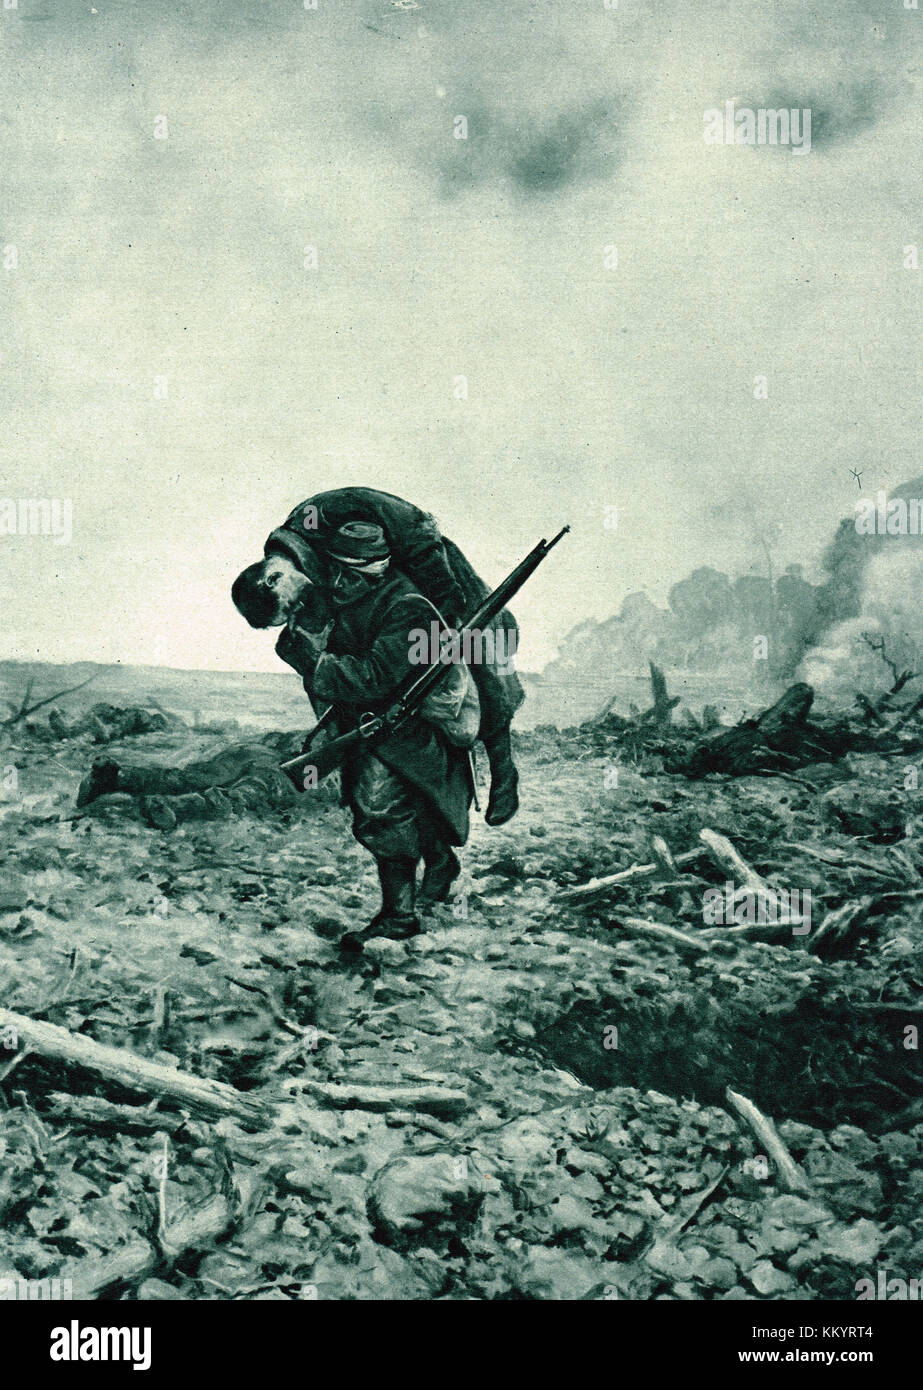 French soldier ww1 stock photos french soldier ww1 stock - Battlefield 1 french soldier ...